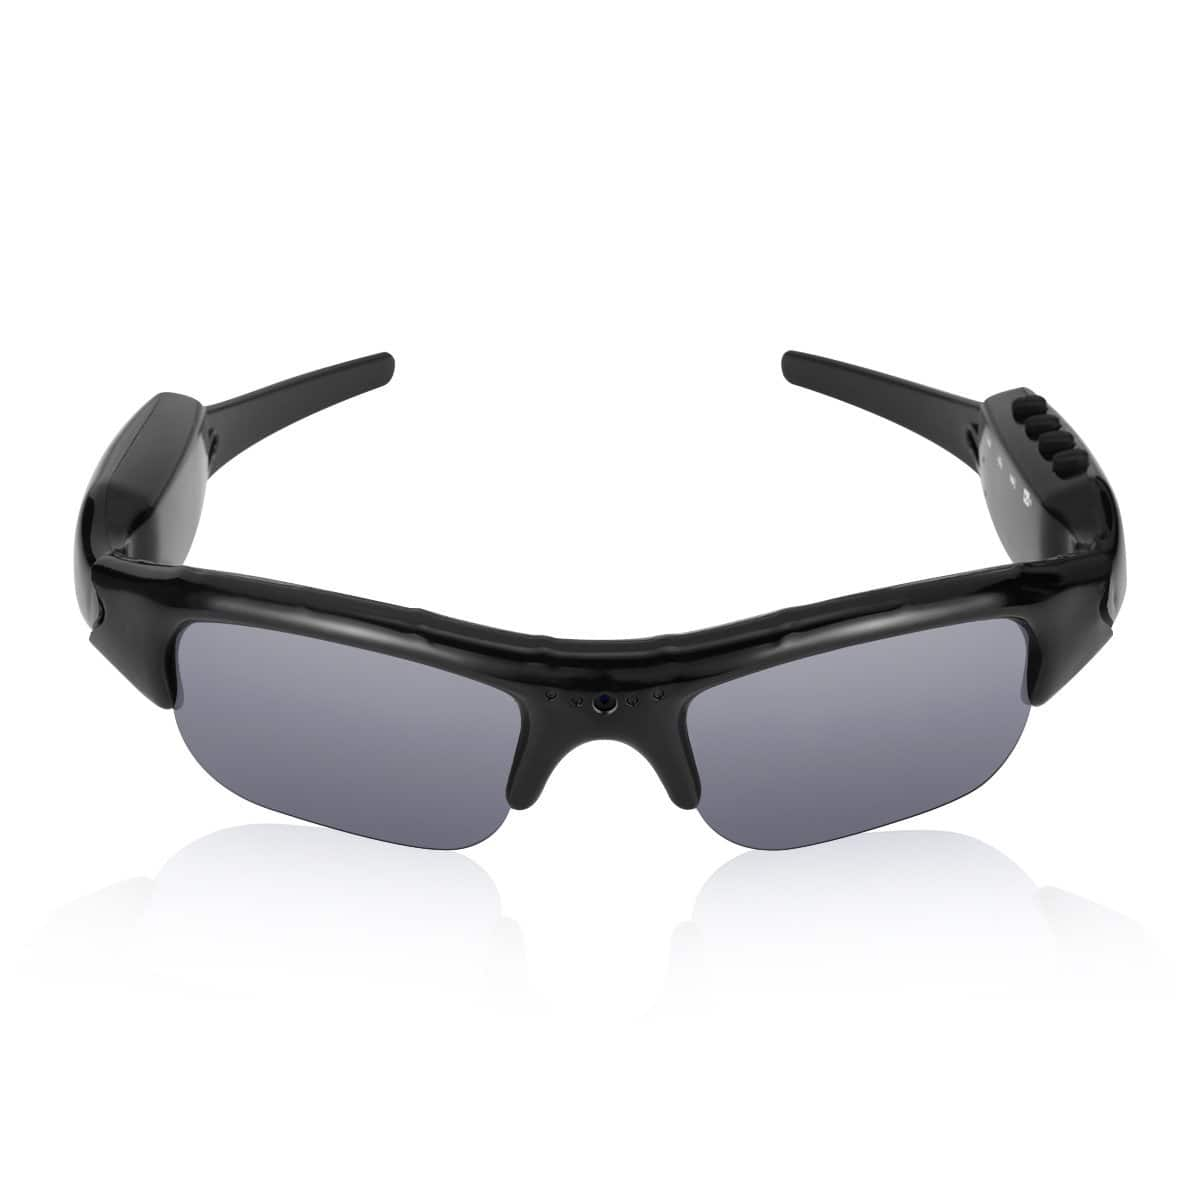 Diggro DG01 Video Glasses Sports Camcorder Polarized Lens Support 1080P HD MP3 32GB Micro SD Card Sports Sunglasses Goggle $9